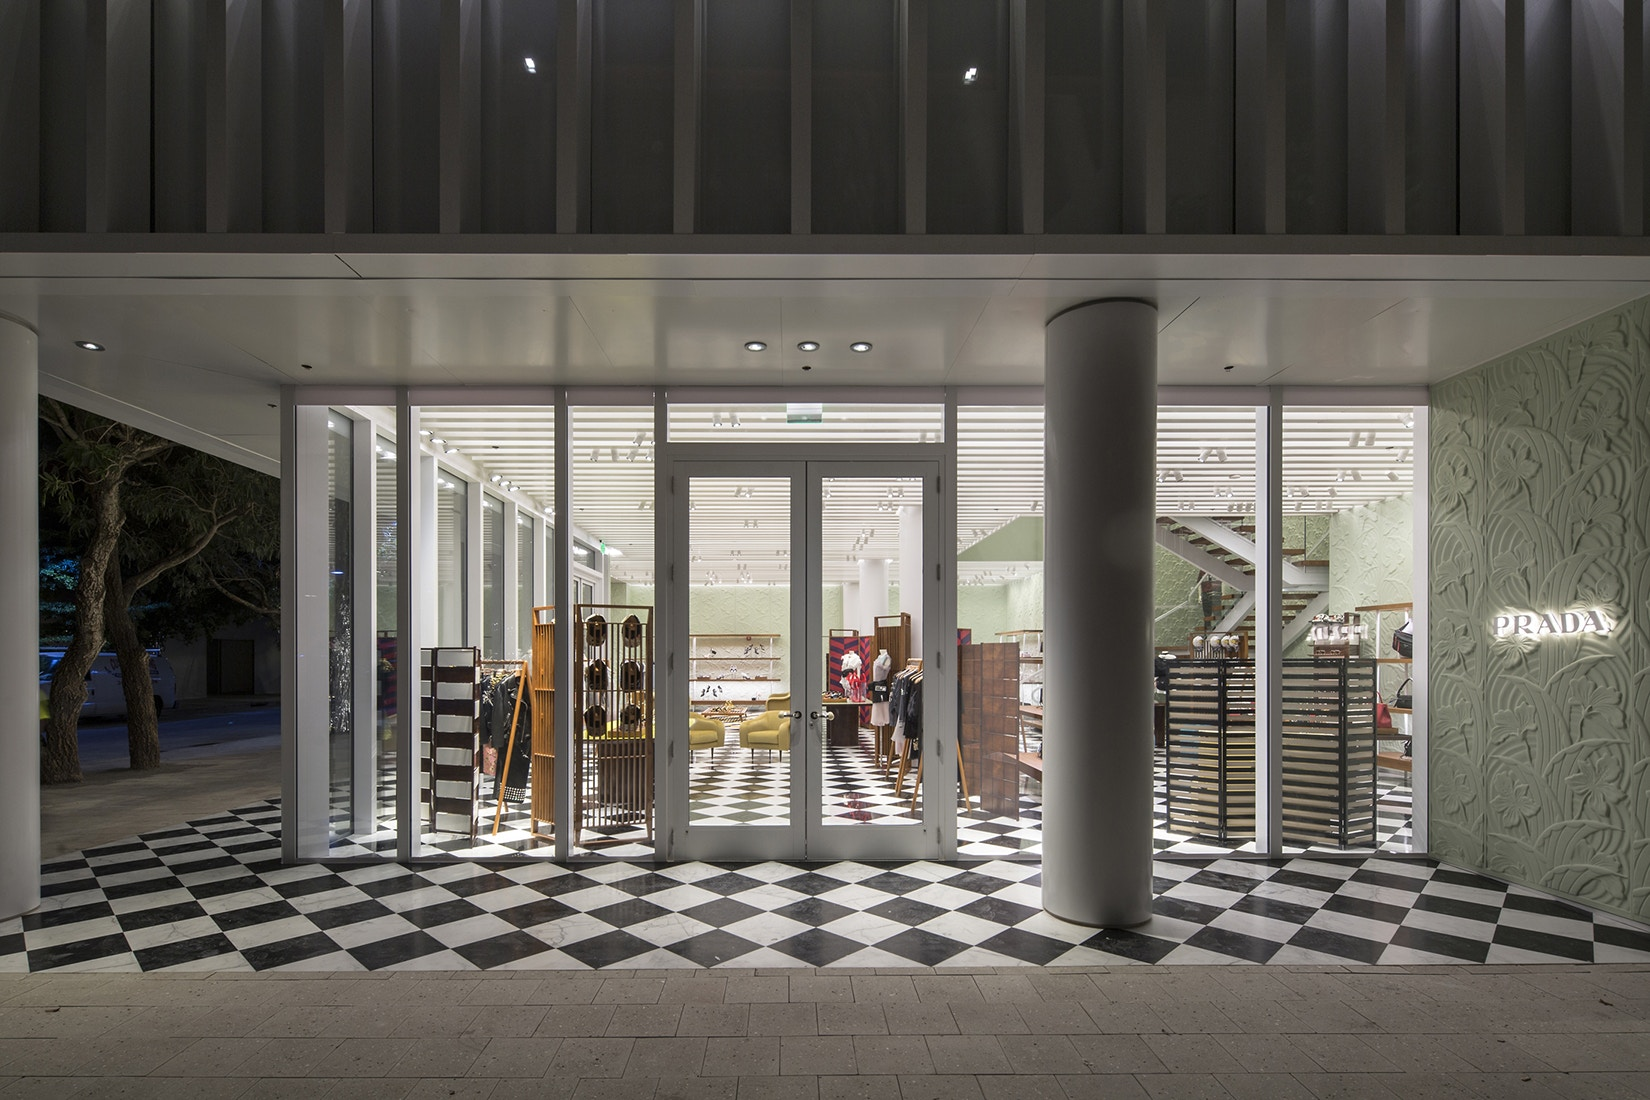 prada-design-district-store-opens-in-miami-2.jpg